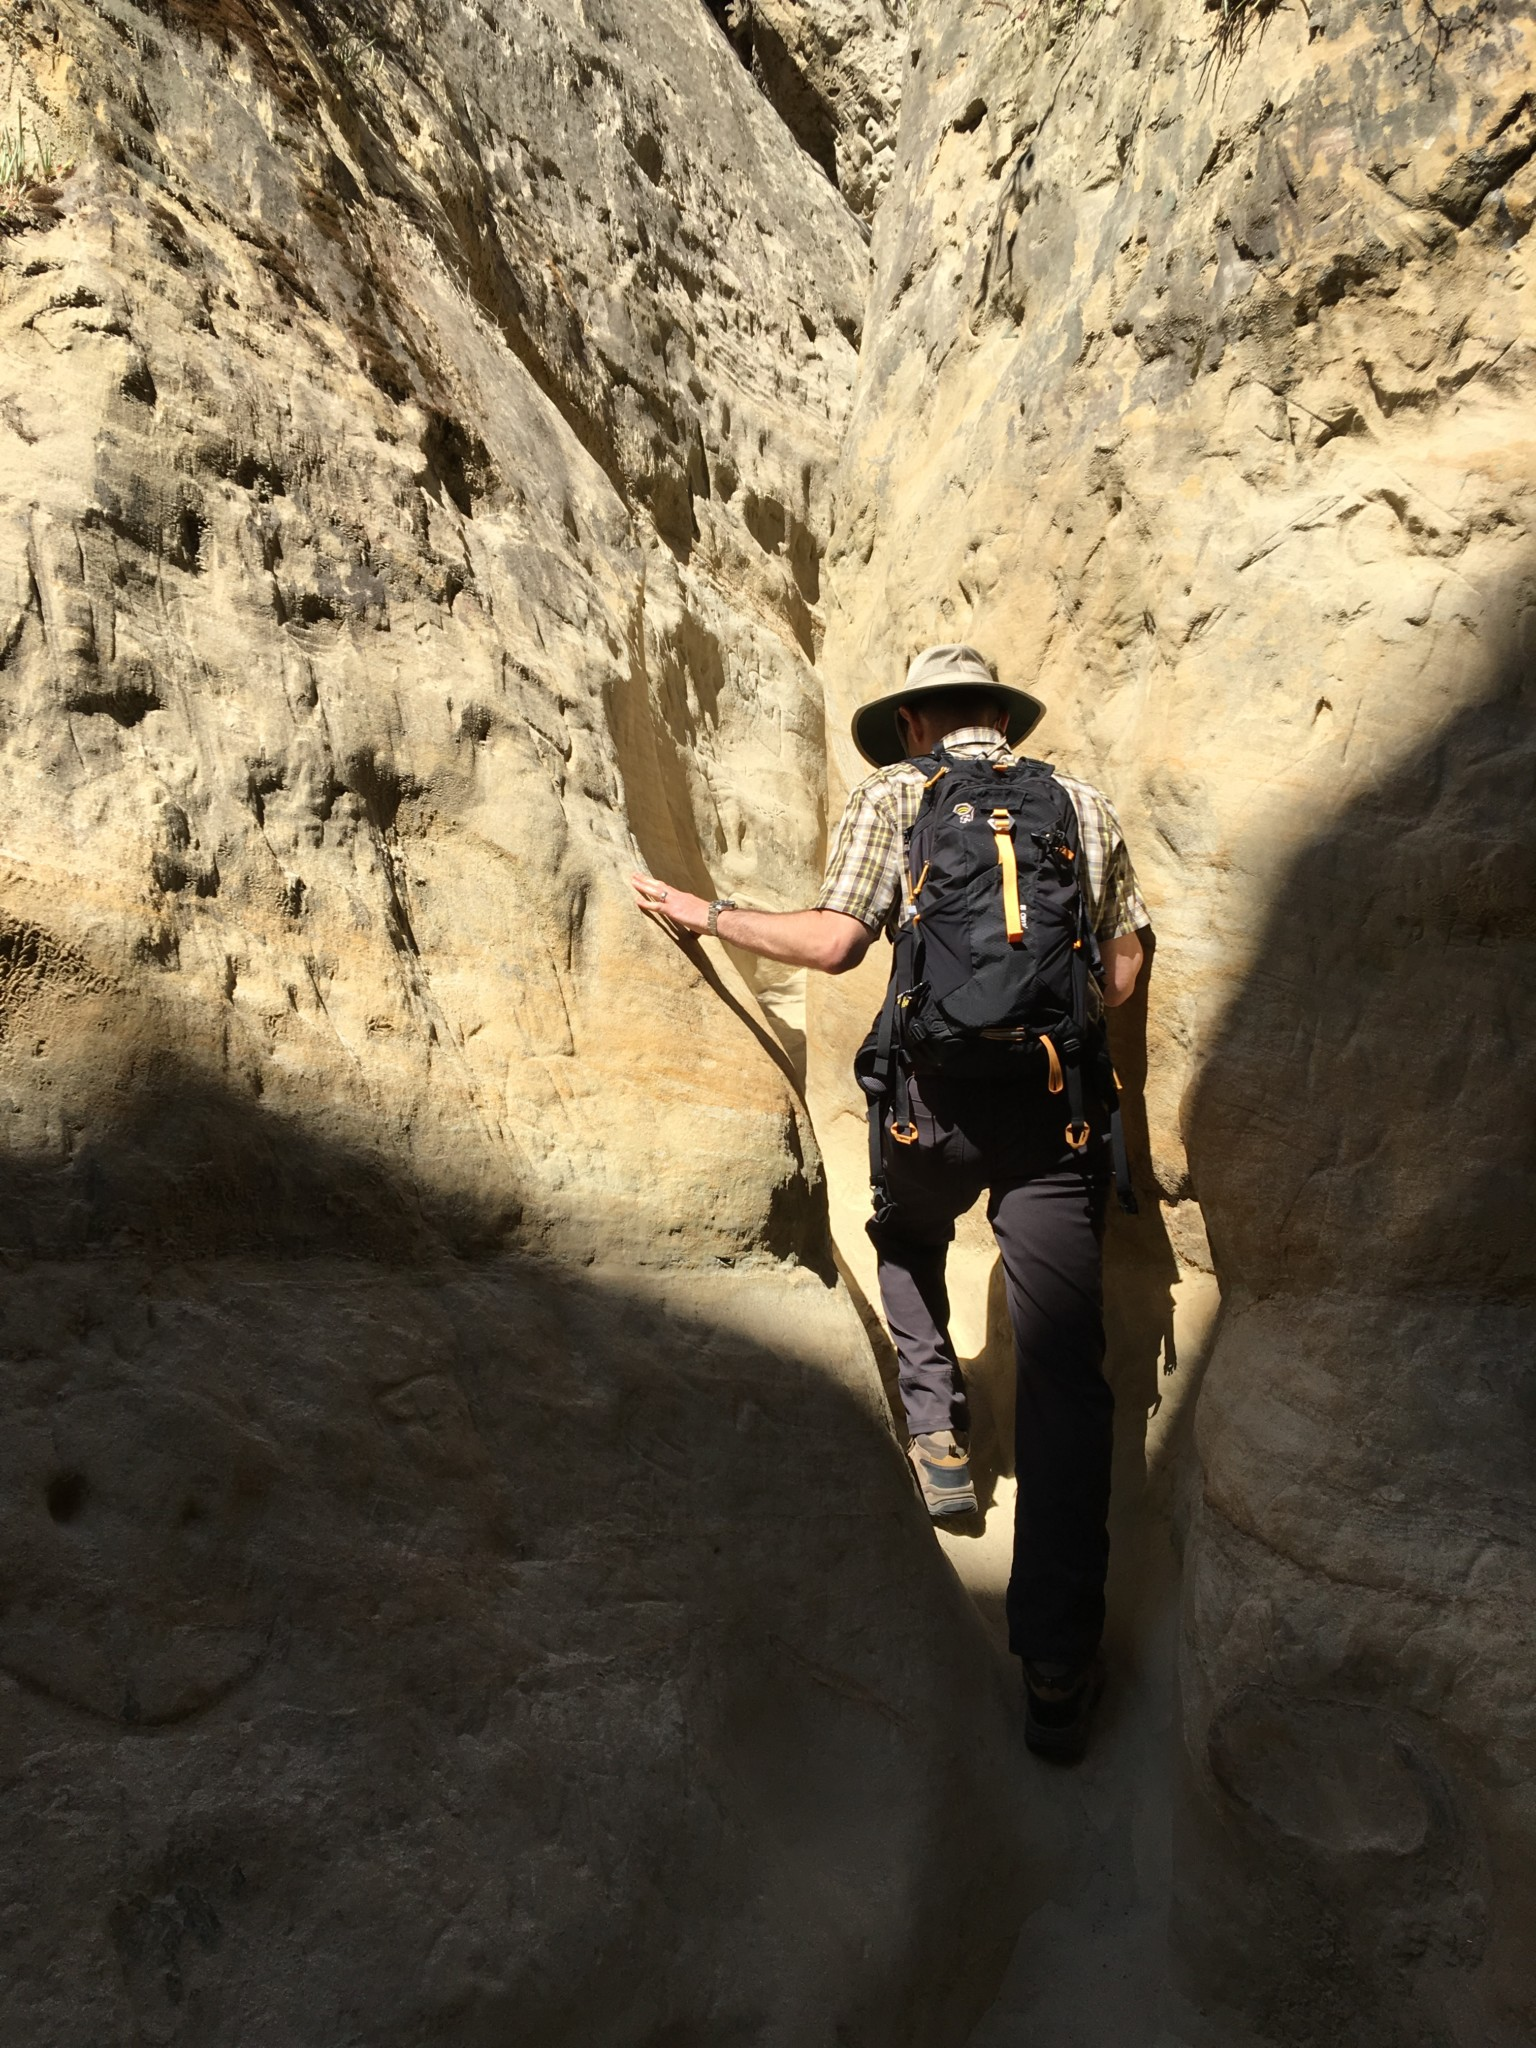 Climbing the slot canyon